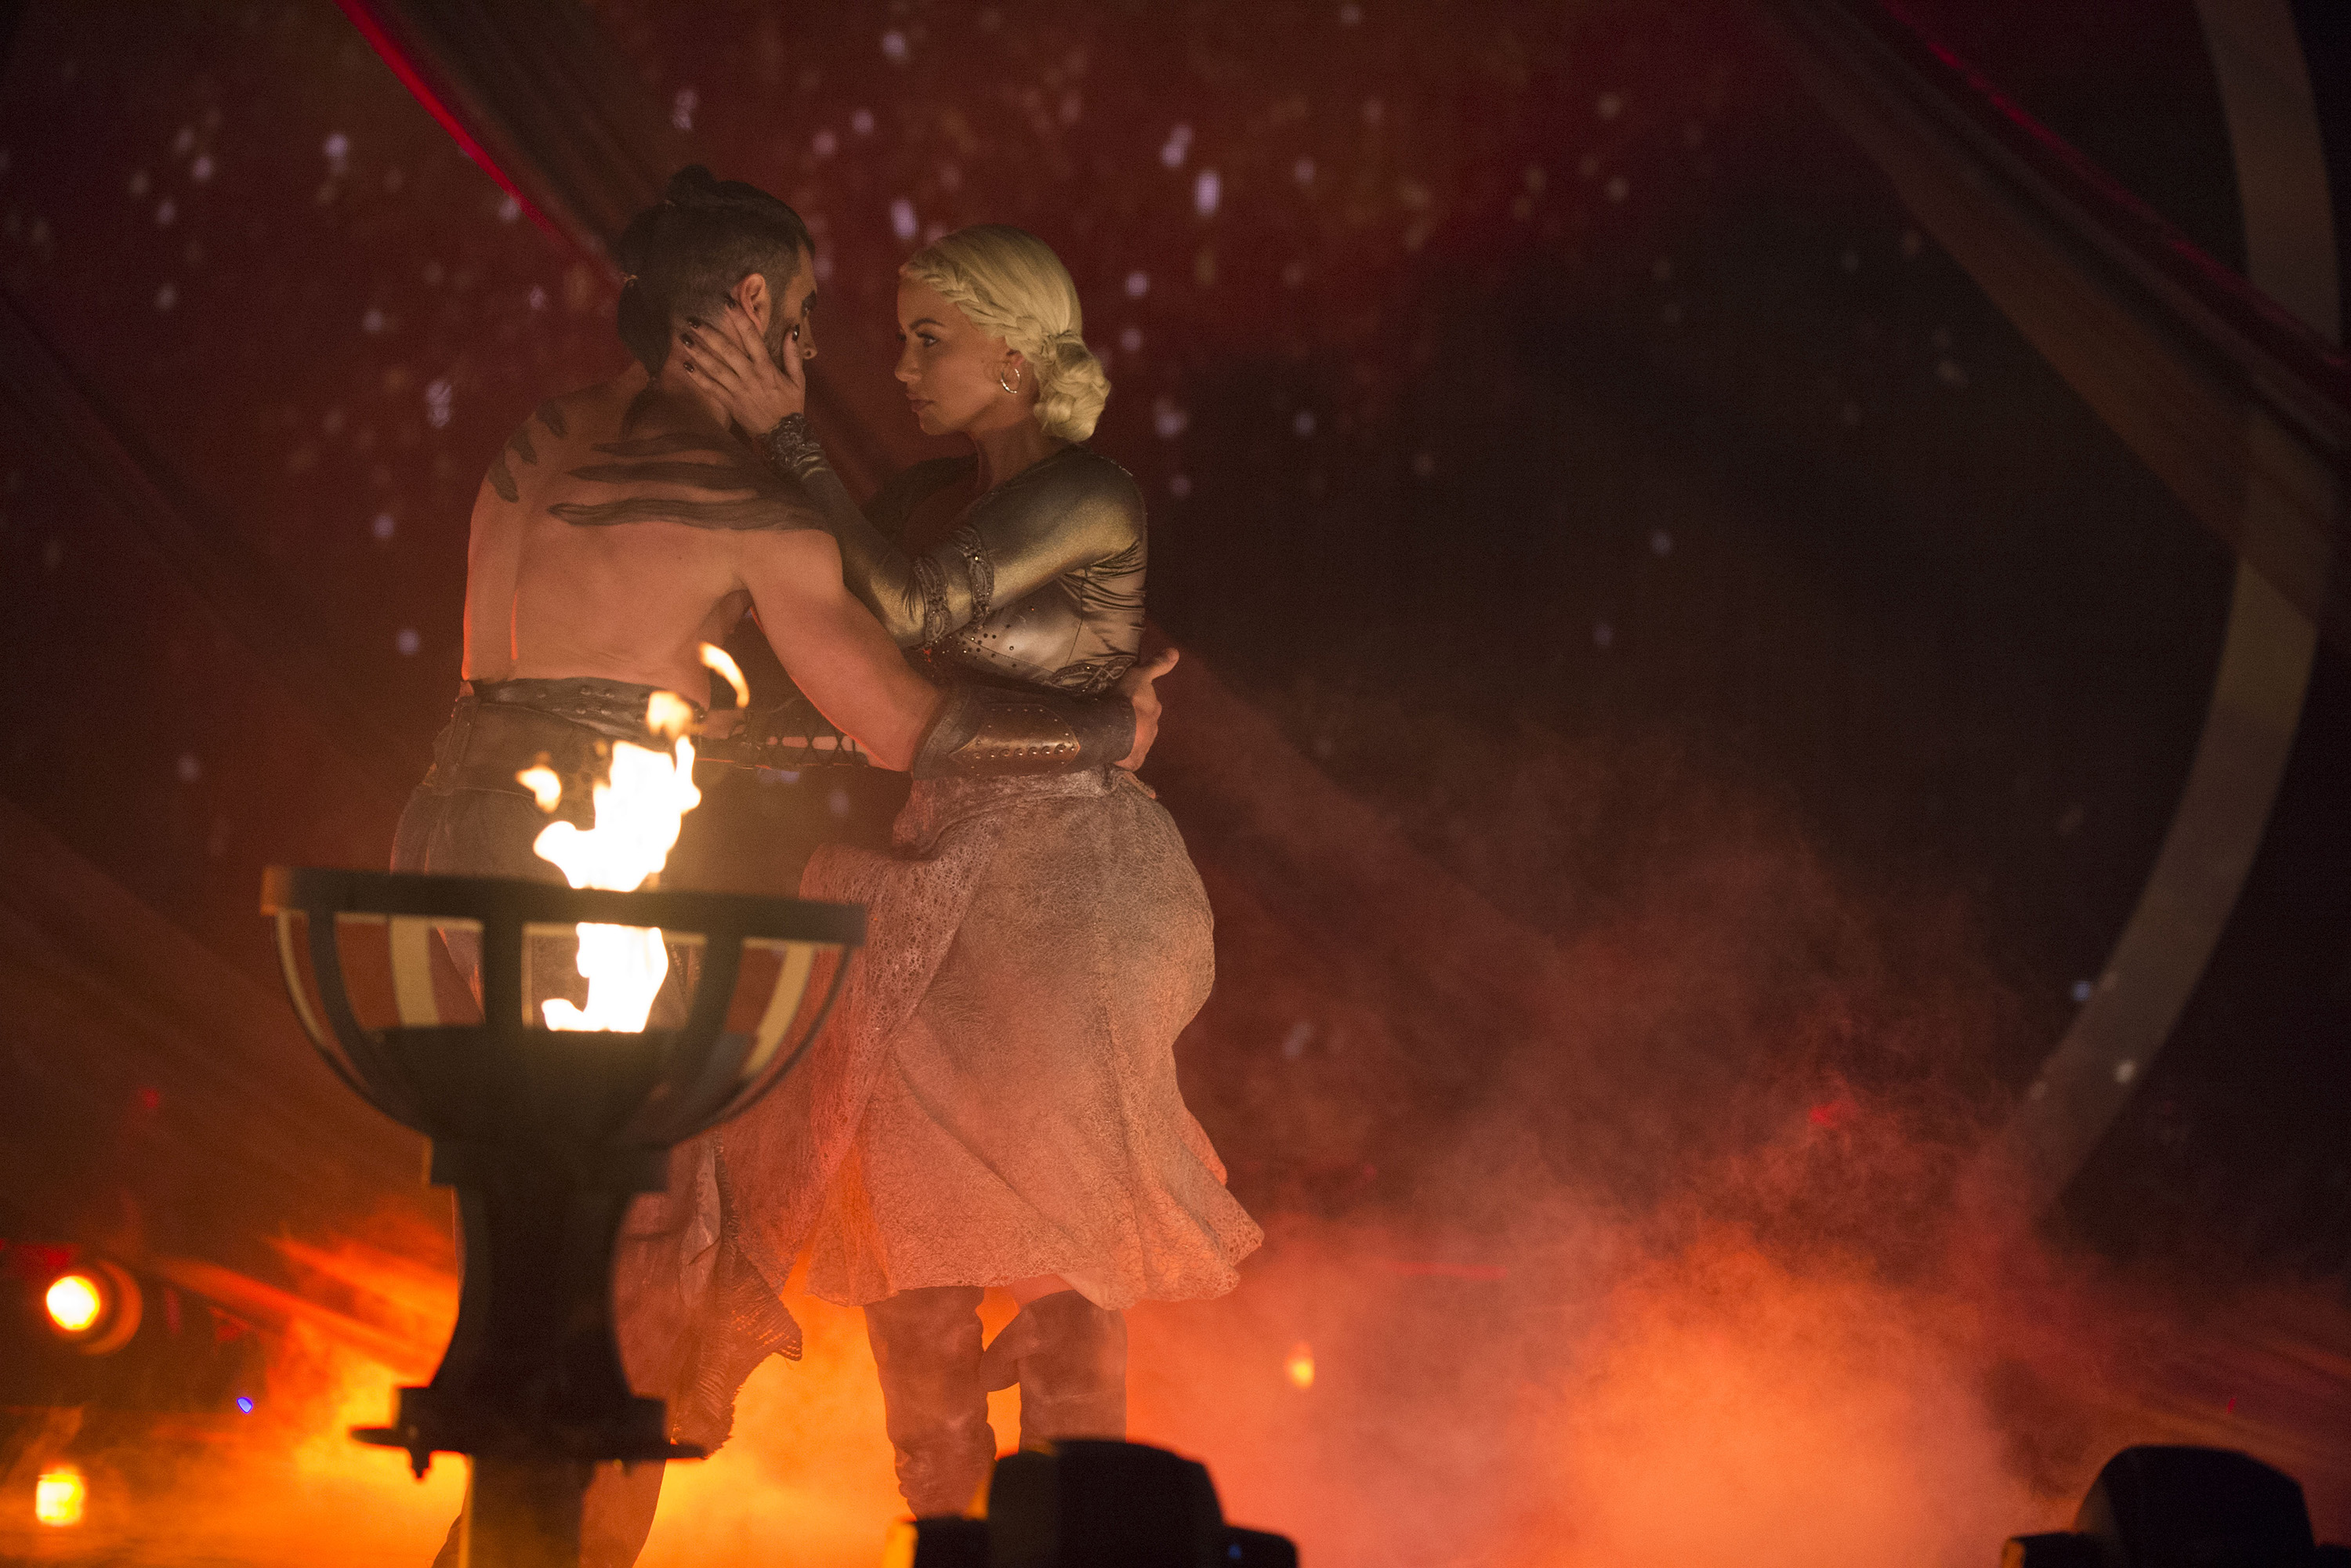 Amber Rose just gave us the Khaleesi/Khal Drogo wedding dance we've always wanted on DWTS